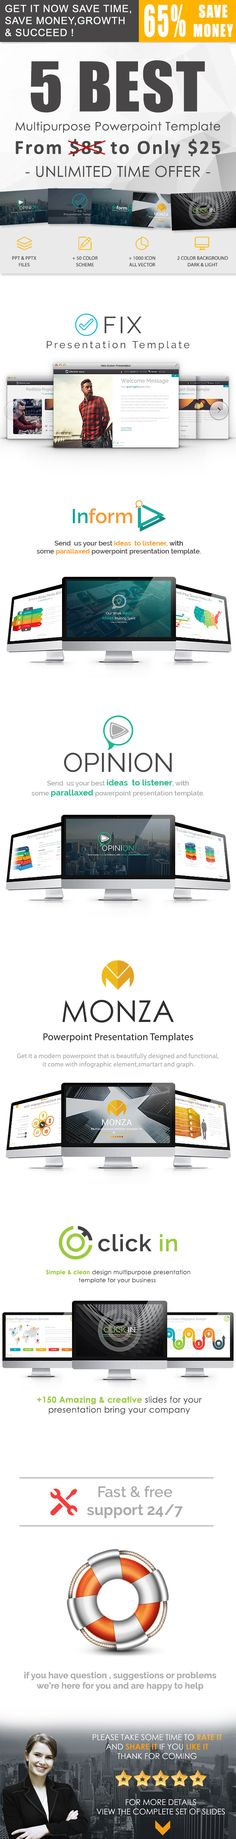 imagal presentation | professional powerpoint templates, Montuca Powerpoint Presentation Template Download, Presentation templates